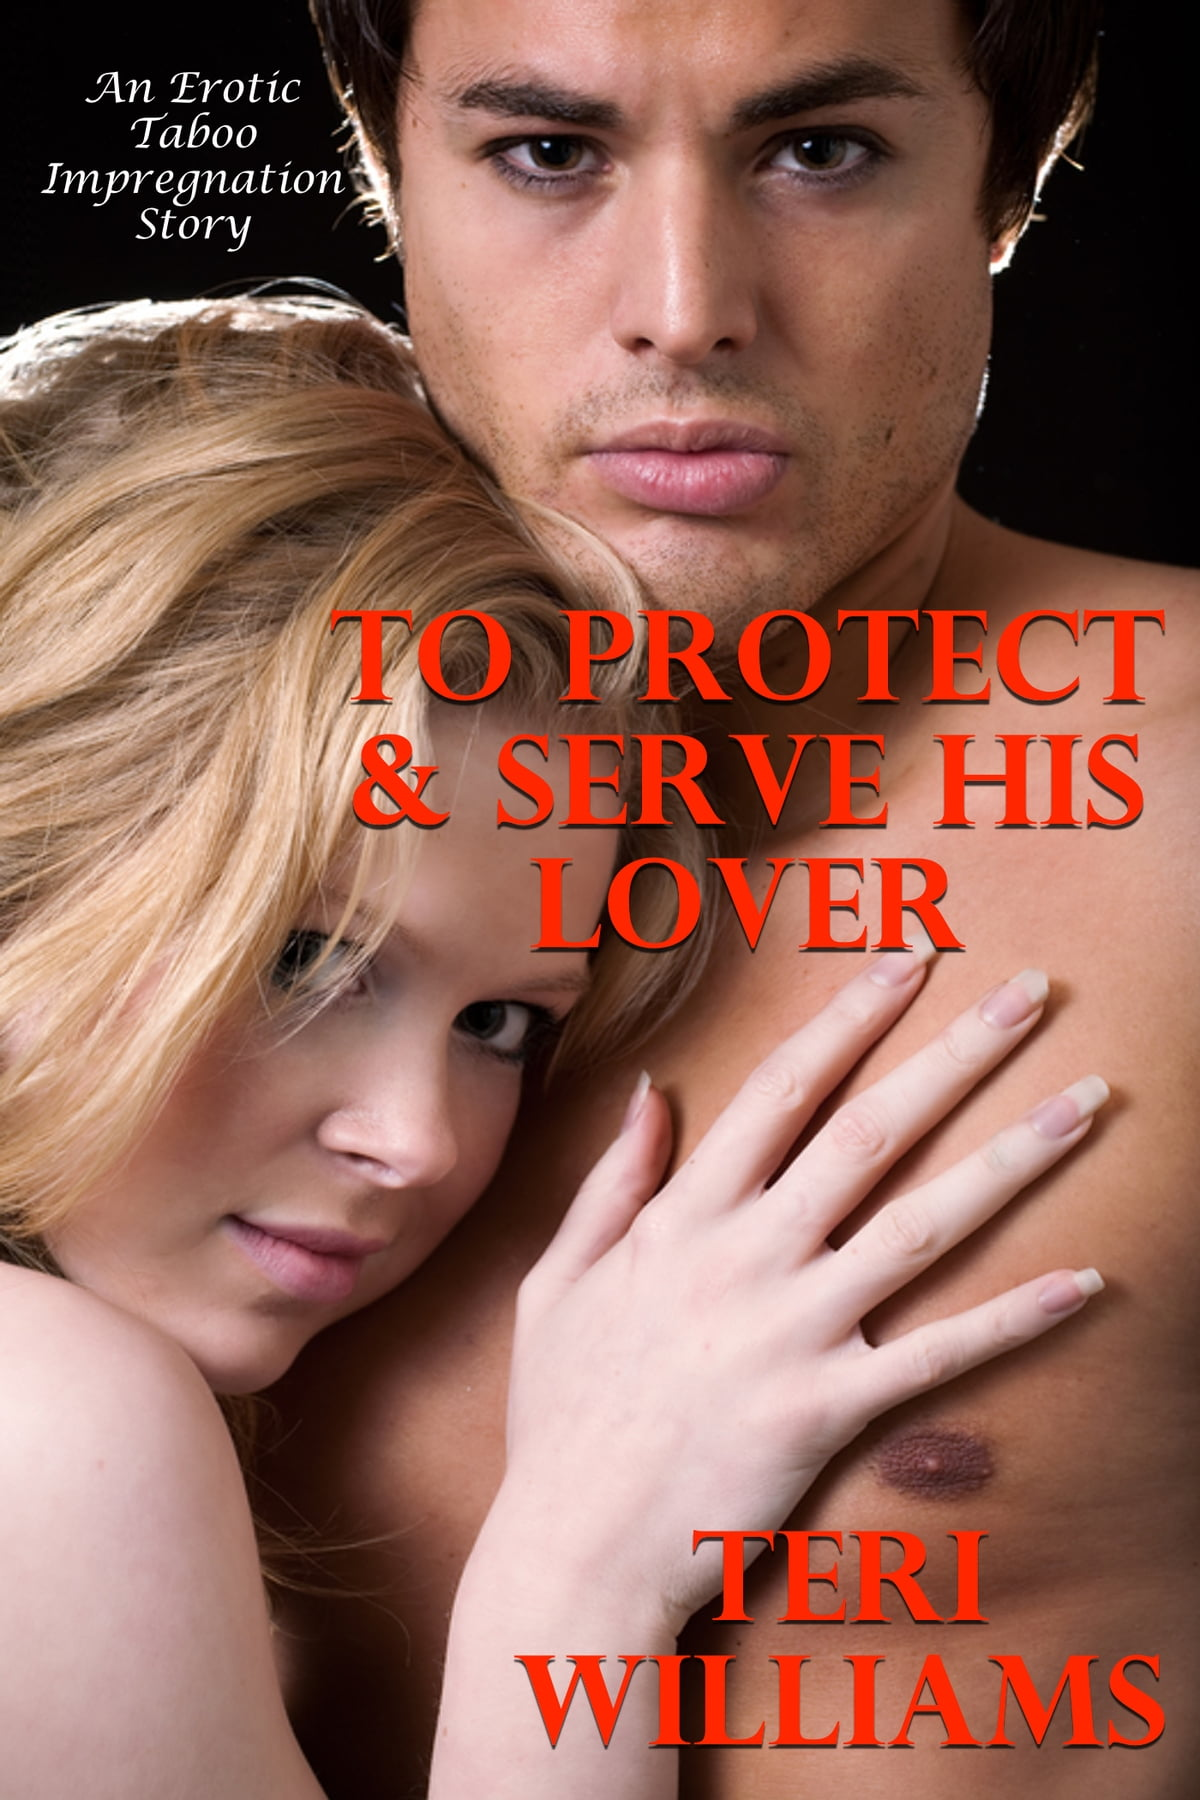 Impregnation Storys Delightful to protect & serve his lover (an erotic taboo impregnation story